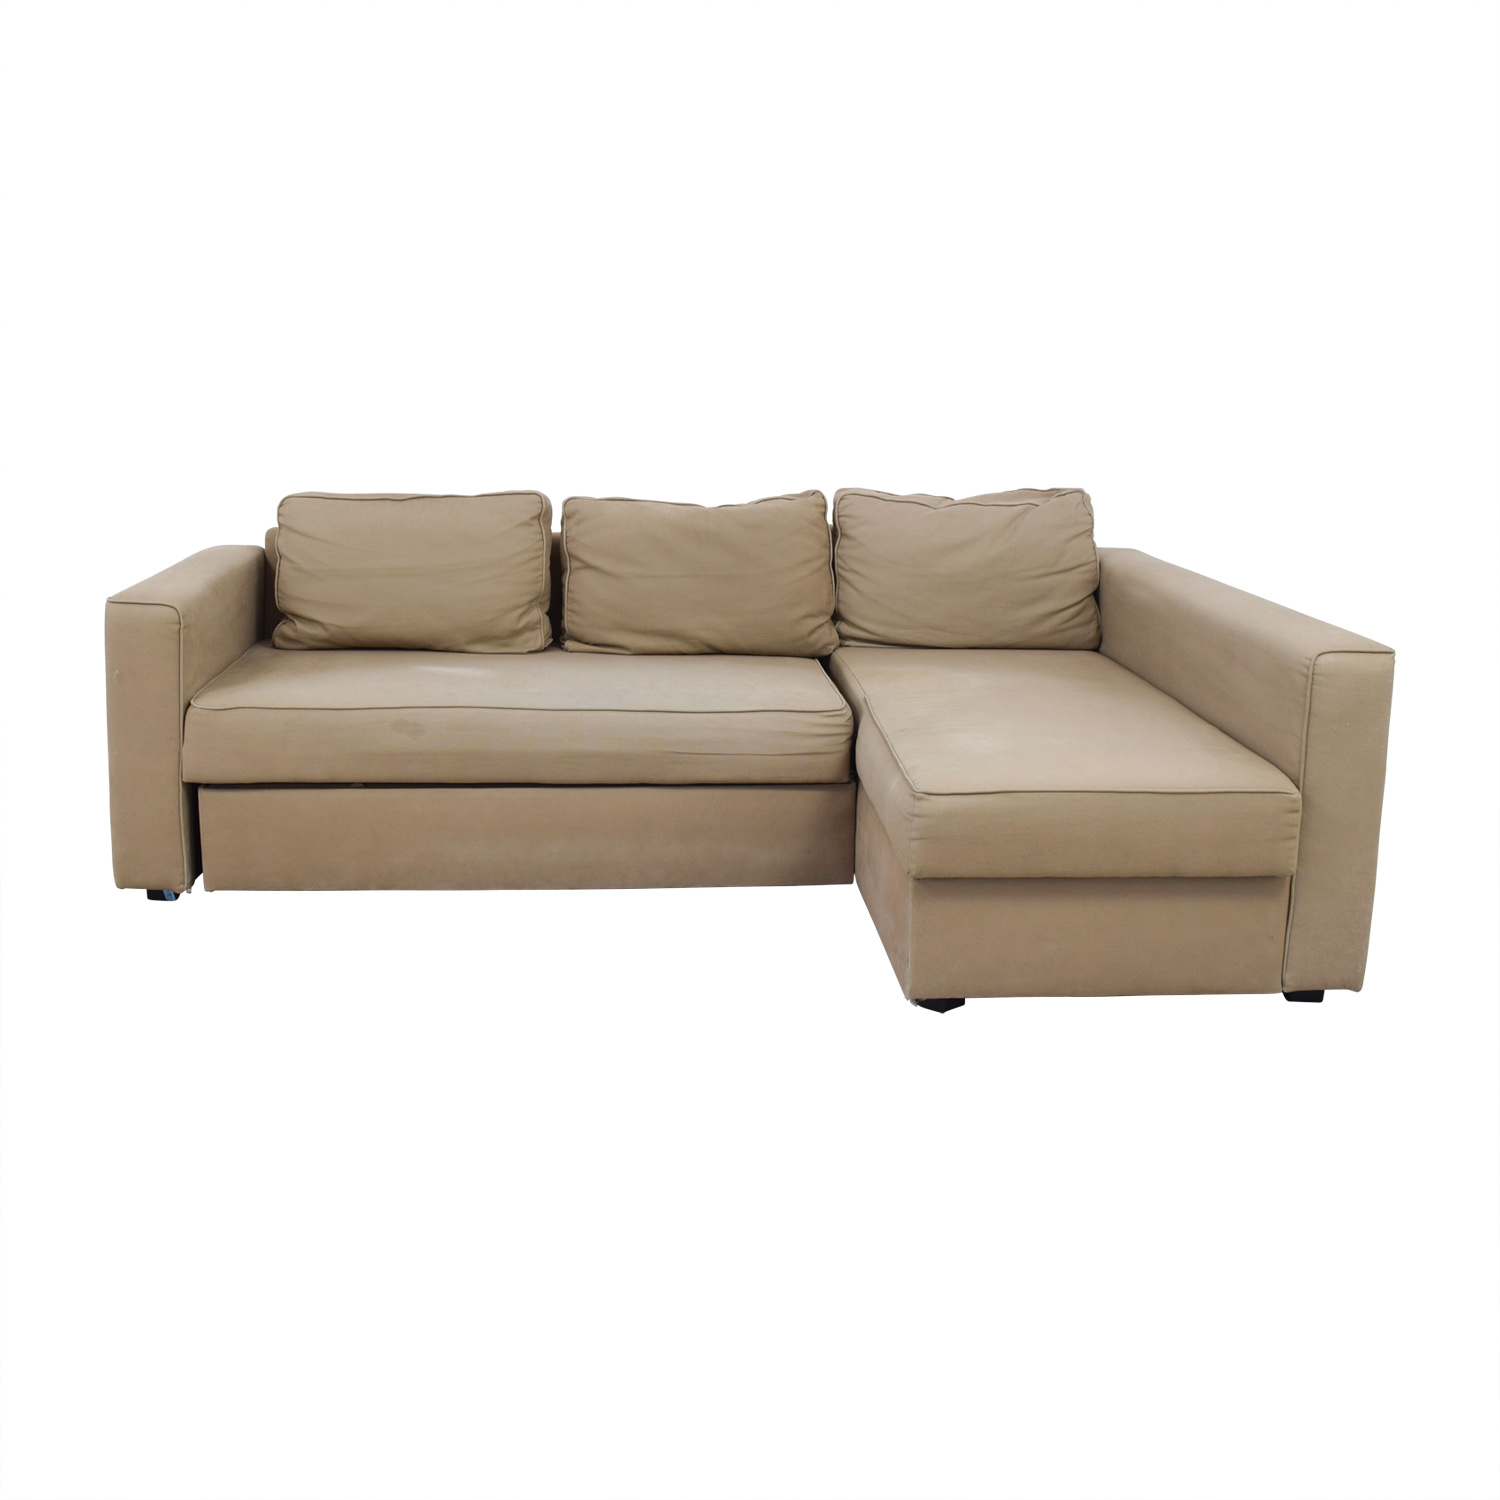 ikea couch sofa sectional manstad highest quality sofas 62 off bed with storage shop online